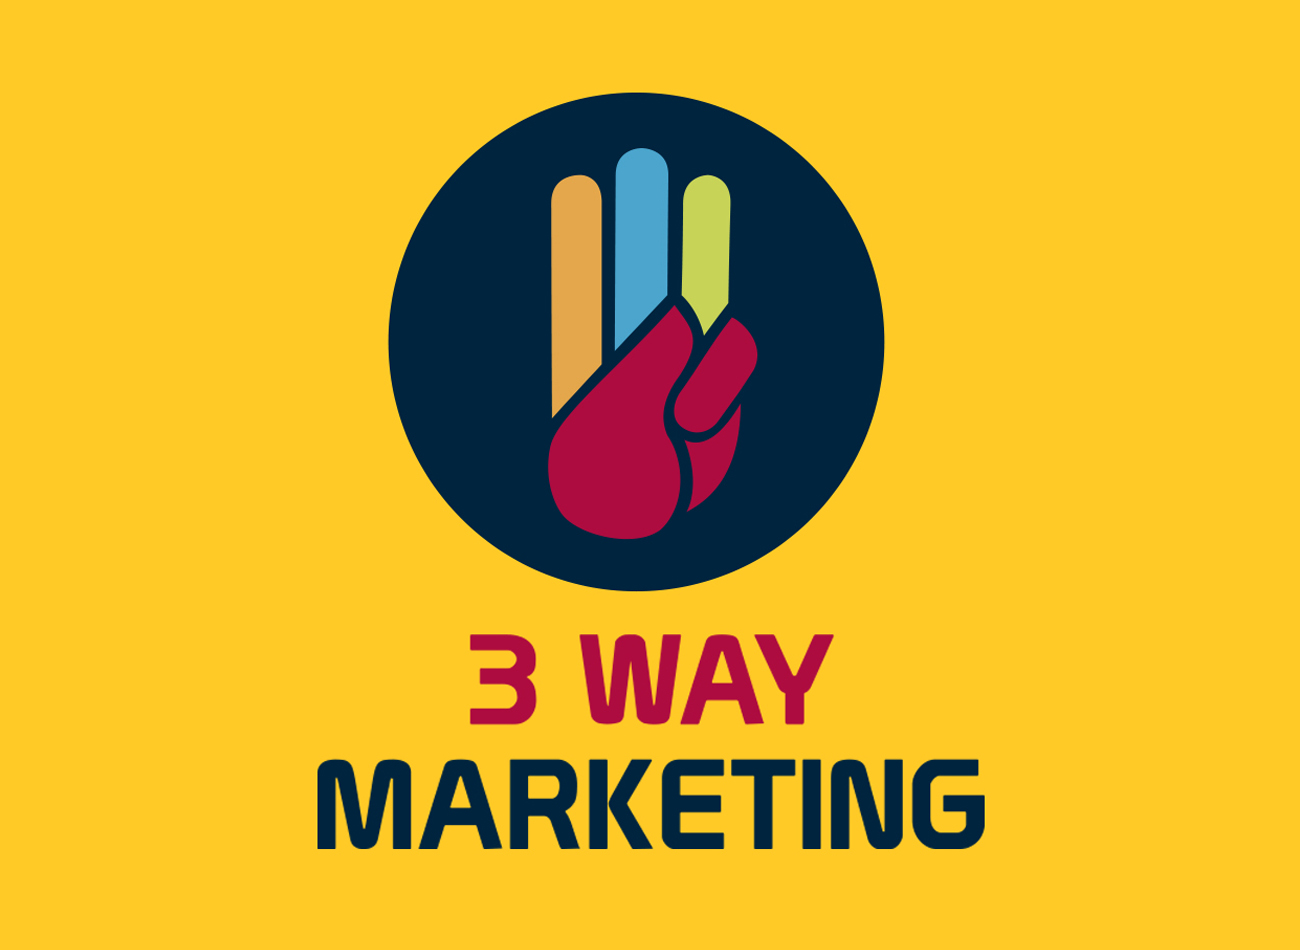 3-way-marketing-iconic-logo-designers-agent-orange-south-african-top-rebranding-agency.jpg